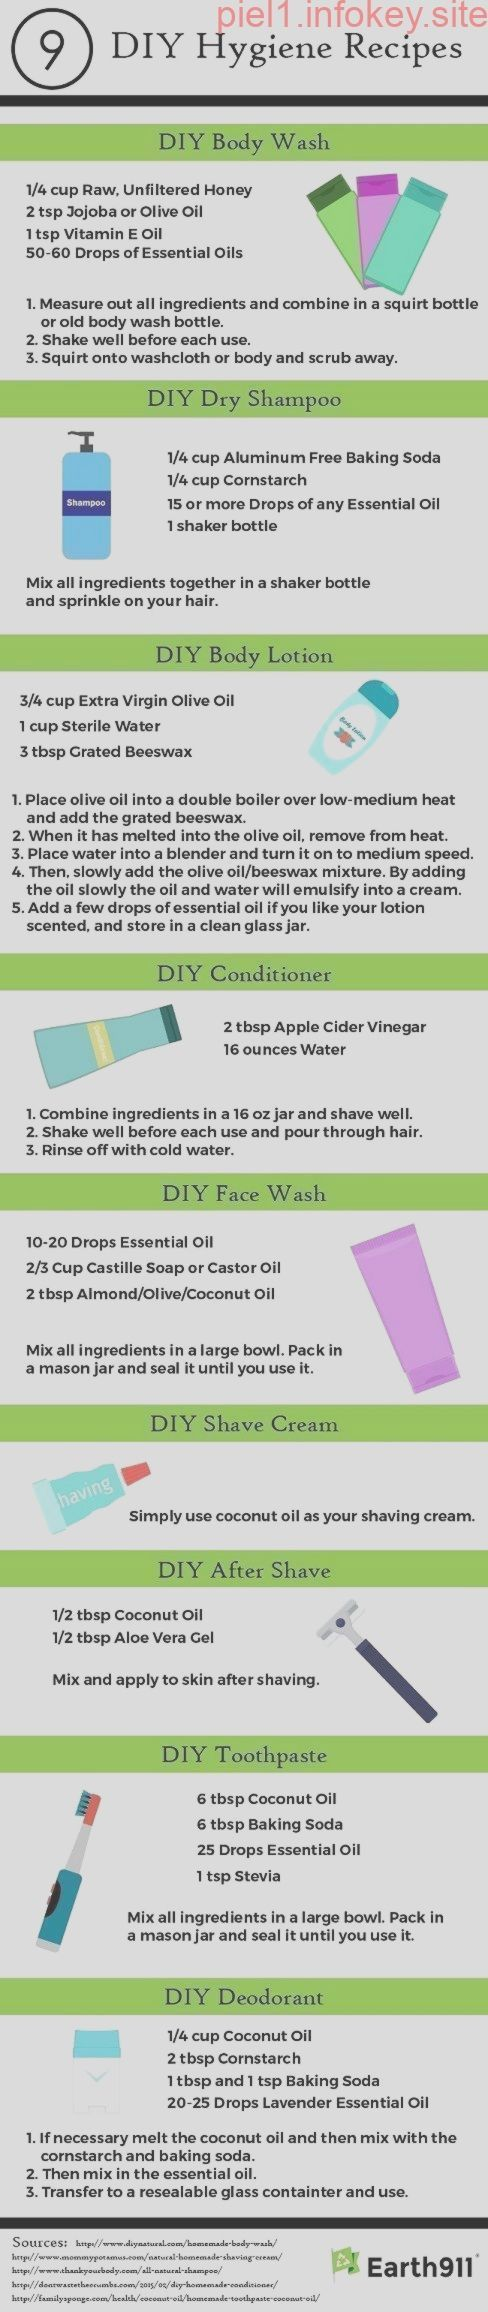 # Skincare Recipes- # Skincare Recipes- Easy DIY Skincare Recipes that are sic ...  -  Hautpflege-Rezepte